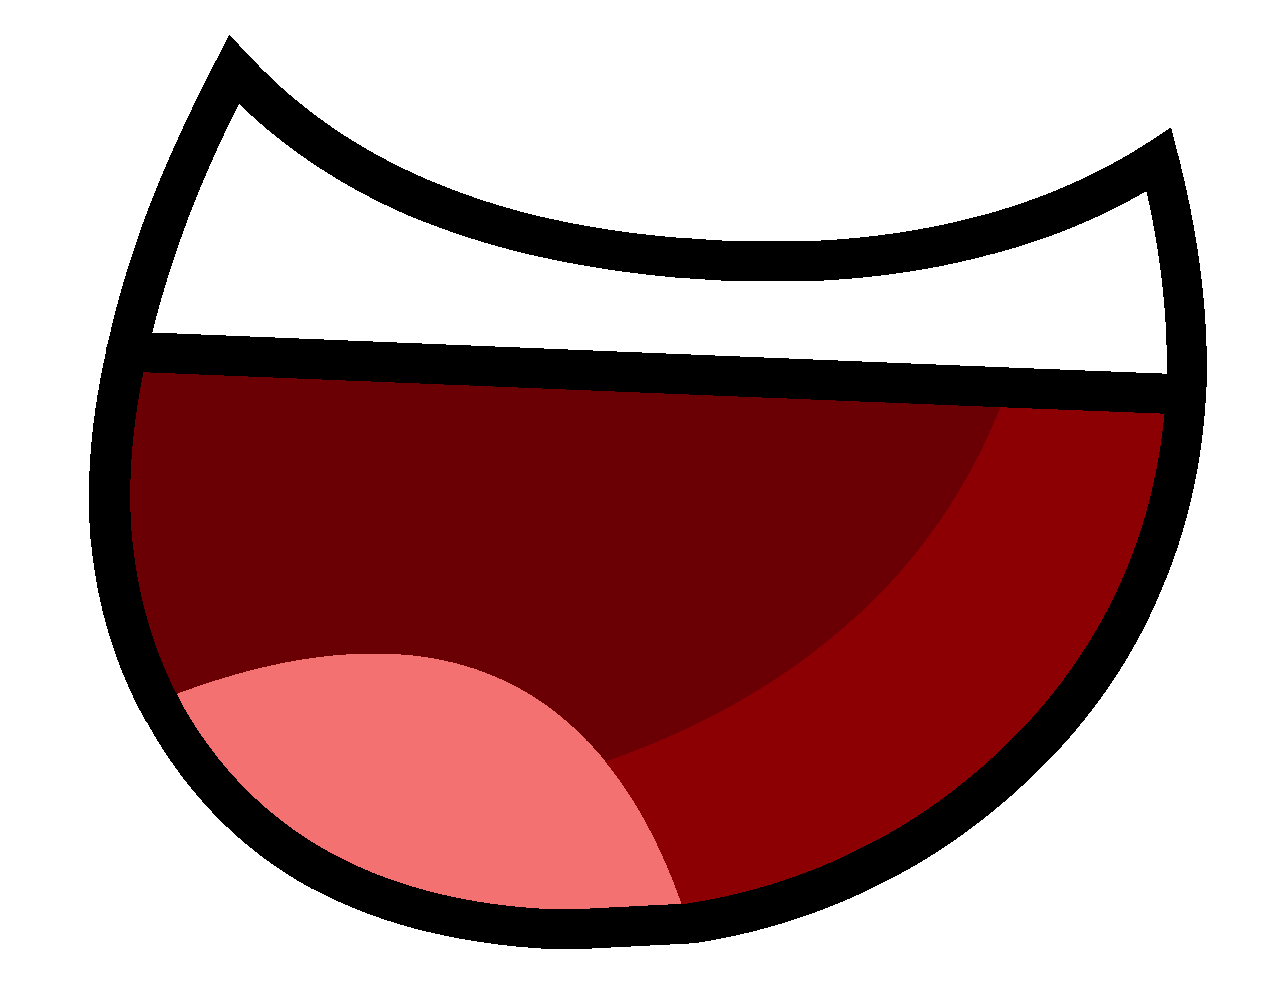 Cartoon group transparent png. Clipart whale open mouth